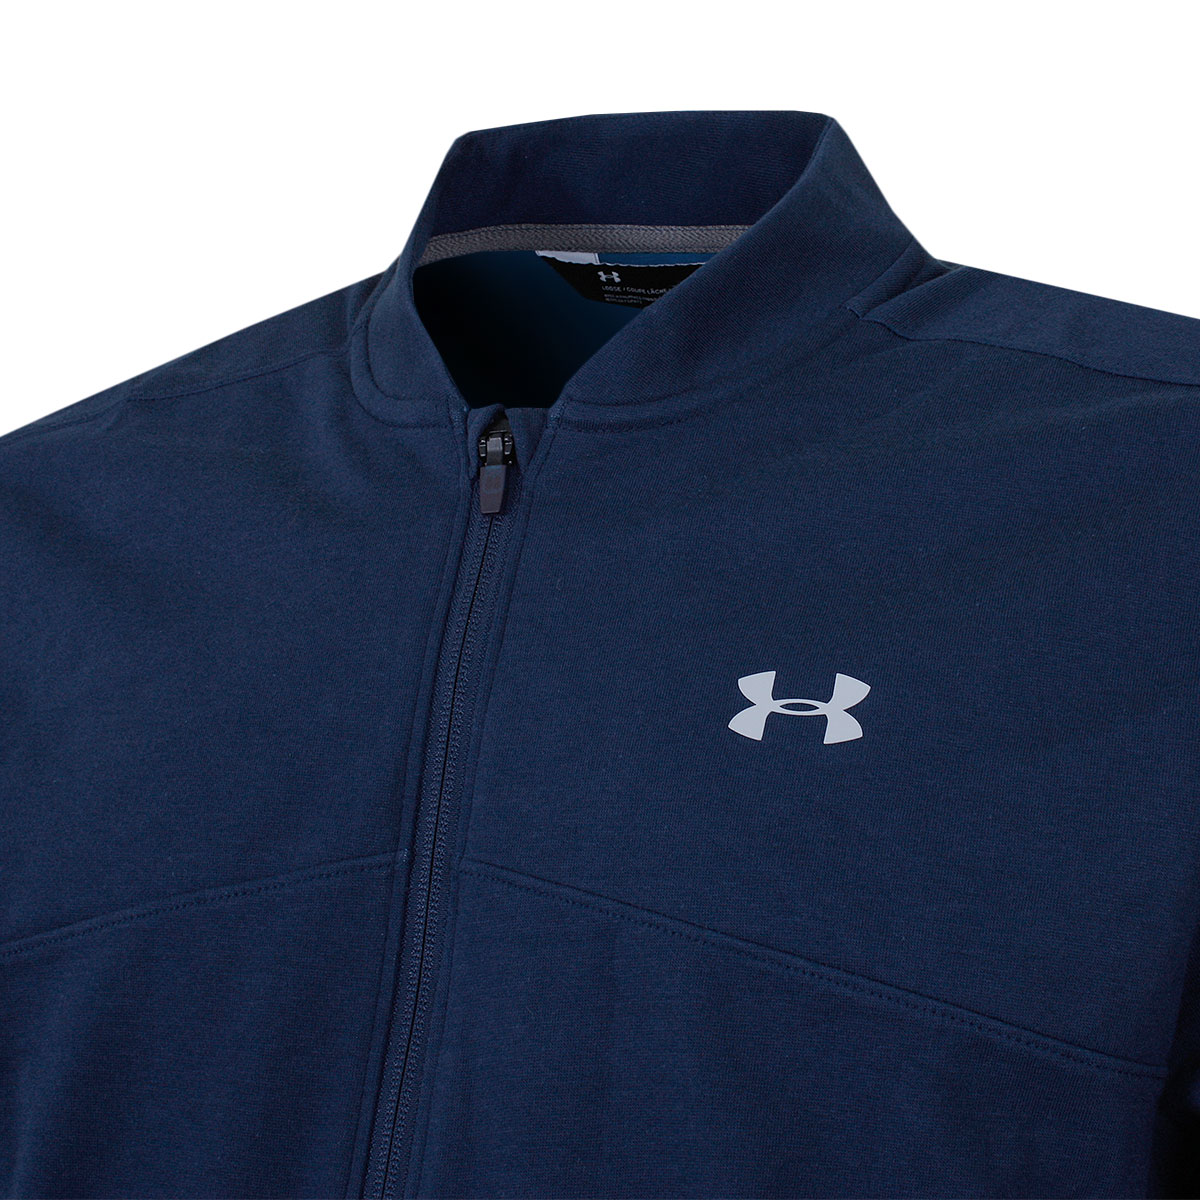 Under-Armour-Mens-UA-Storm-Full-Zip-Water-Repellent-Golf-Jacket-50-OFF-RRP thumbnail 4